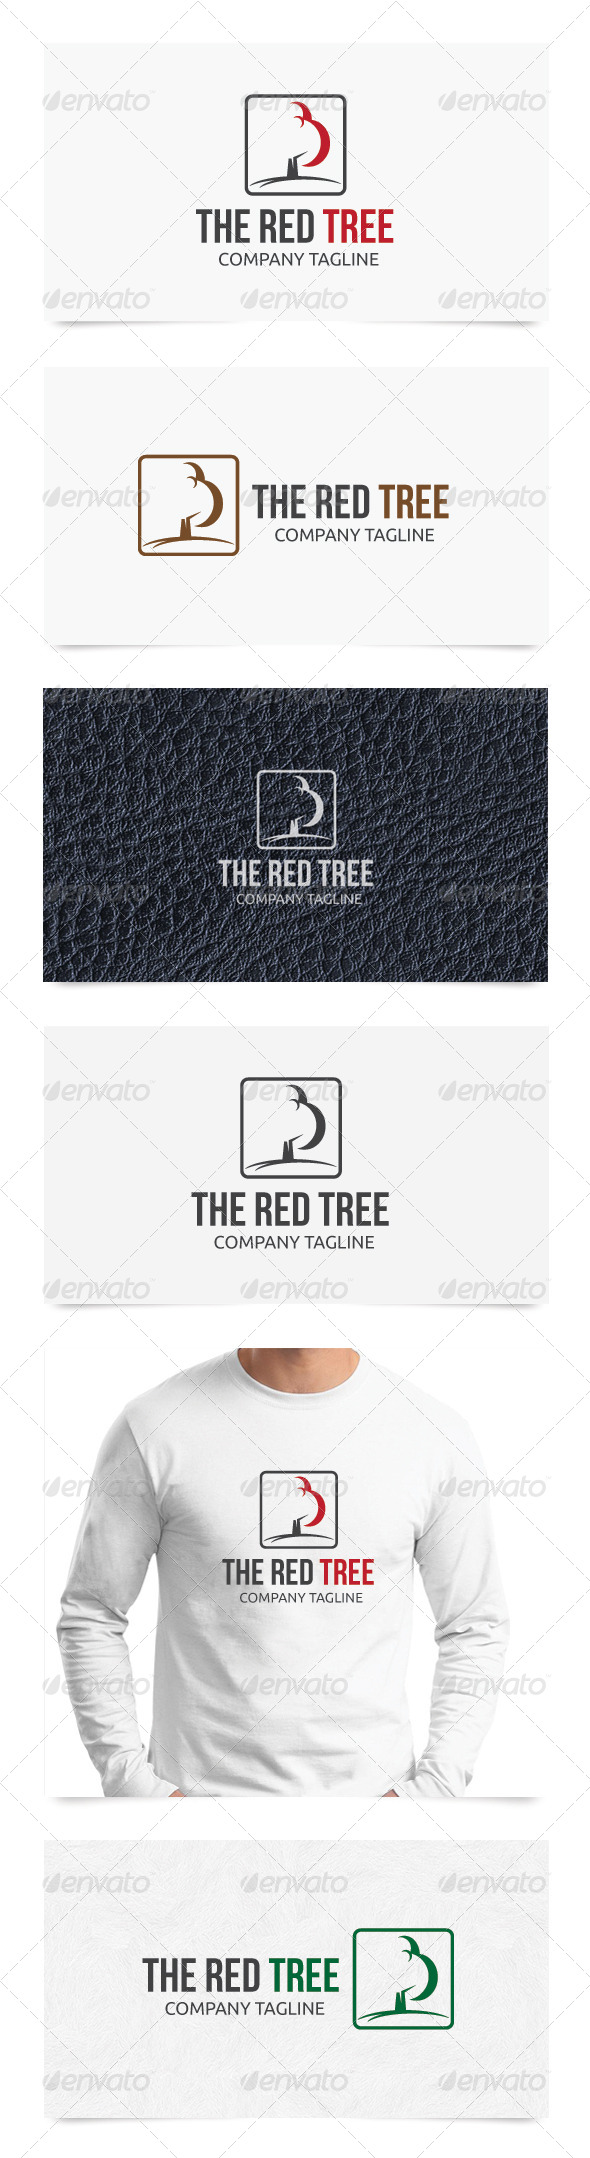 GraphicRiver The Red Tree 5188555